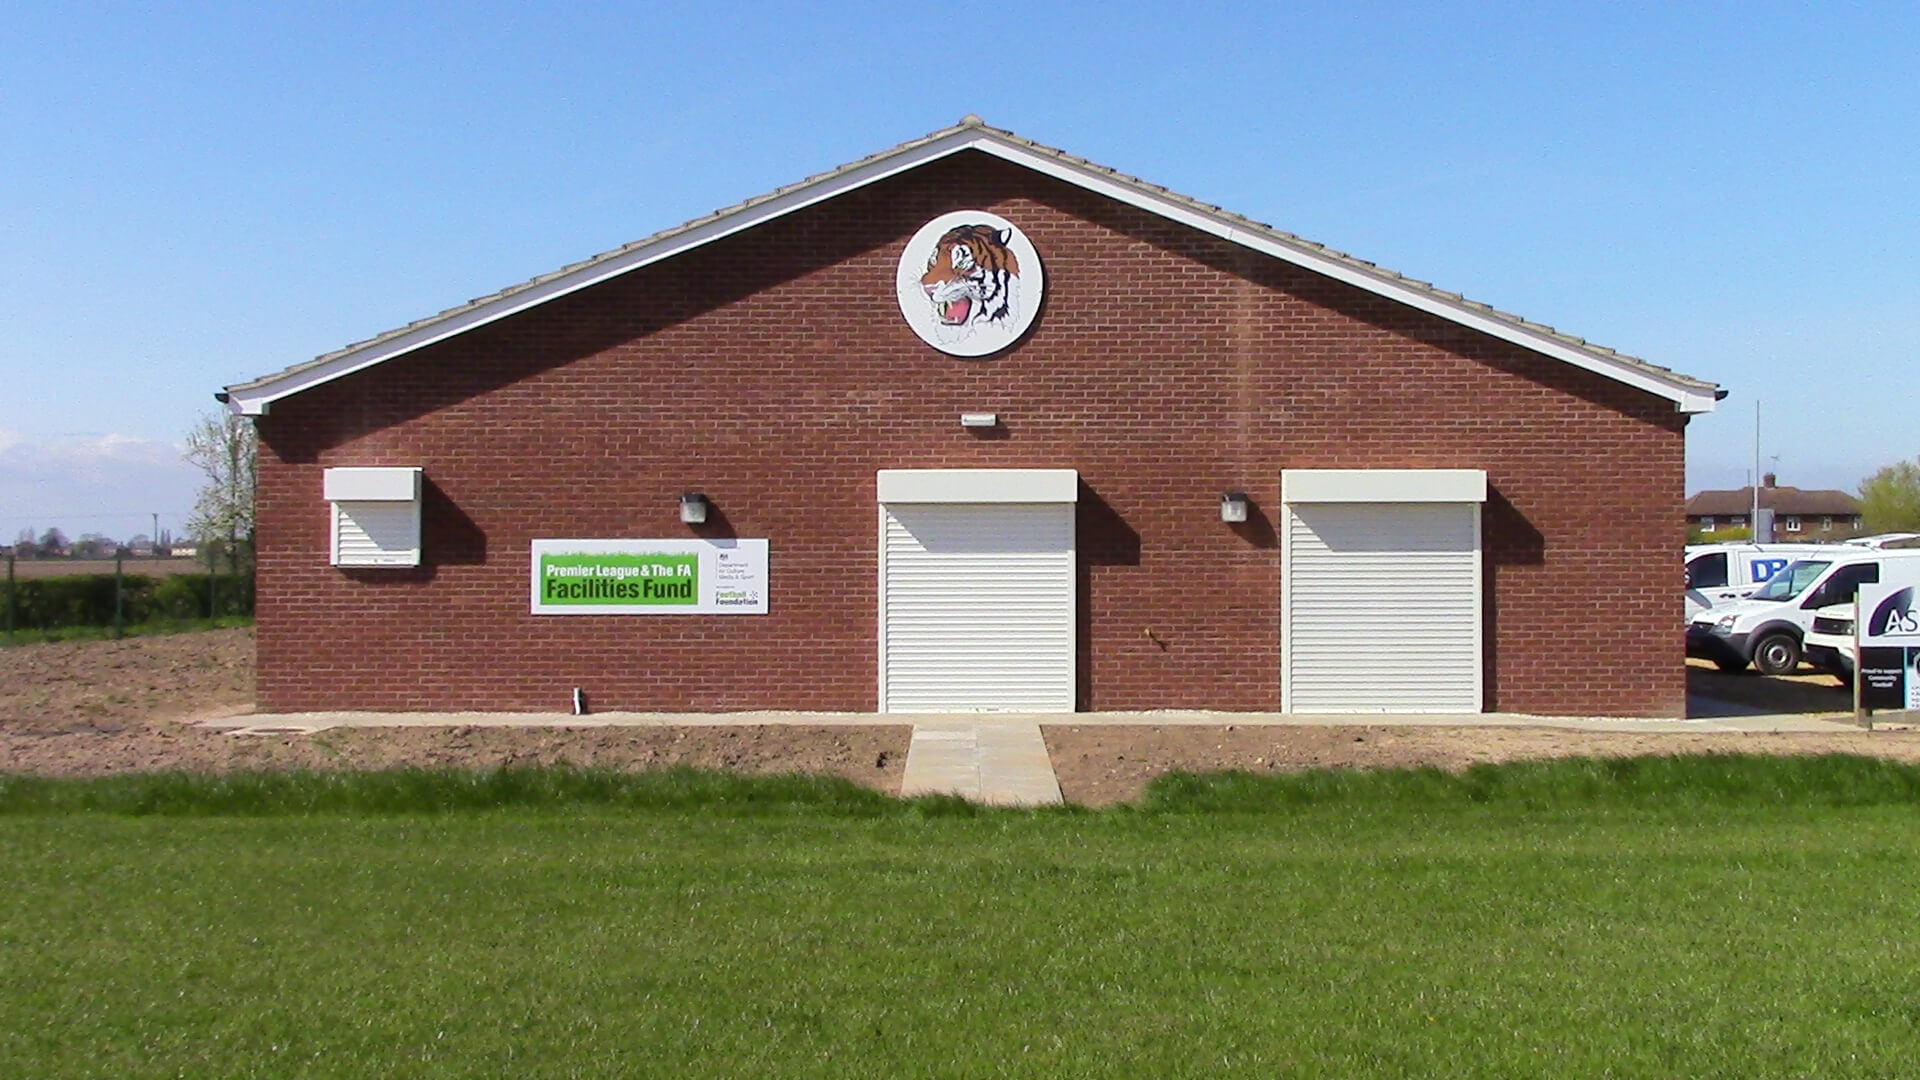 Official Handover of Holbeach United Community Sports Academy